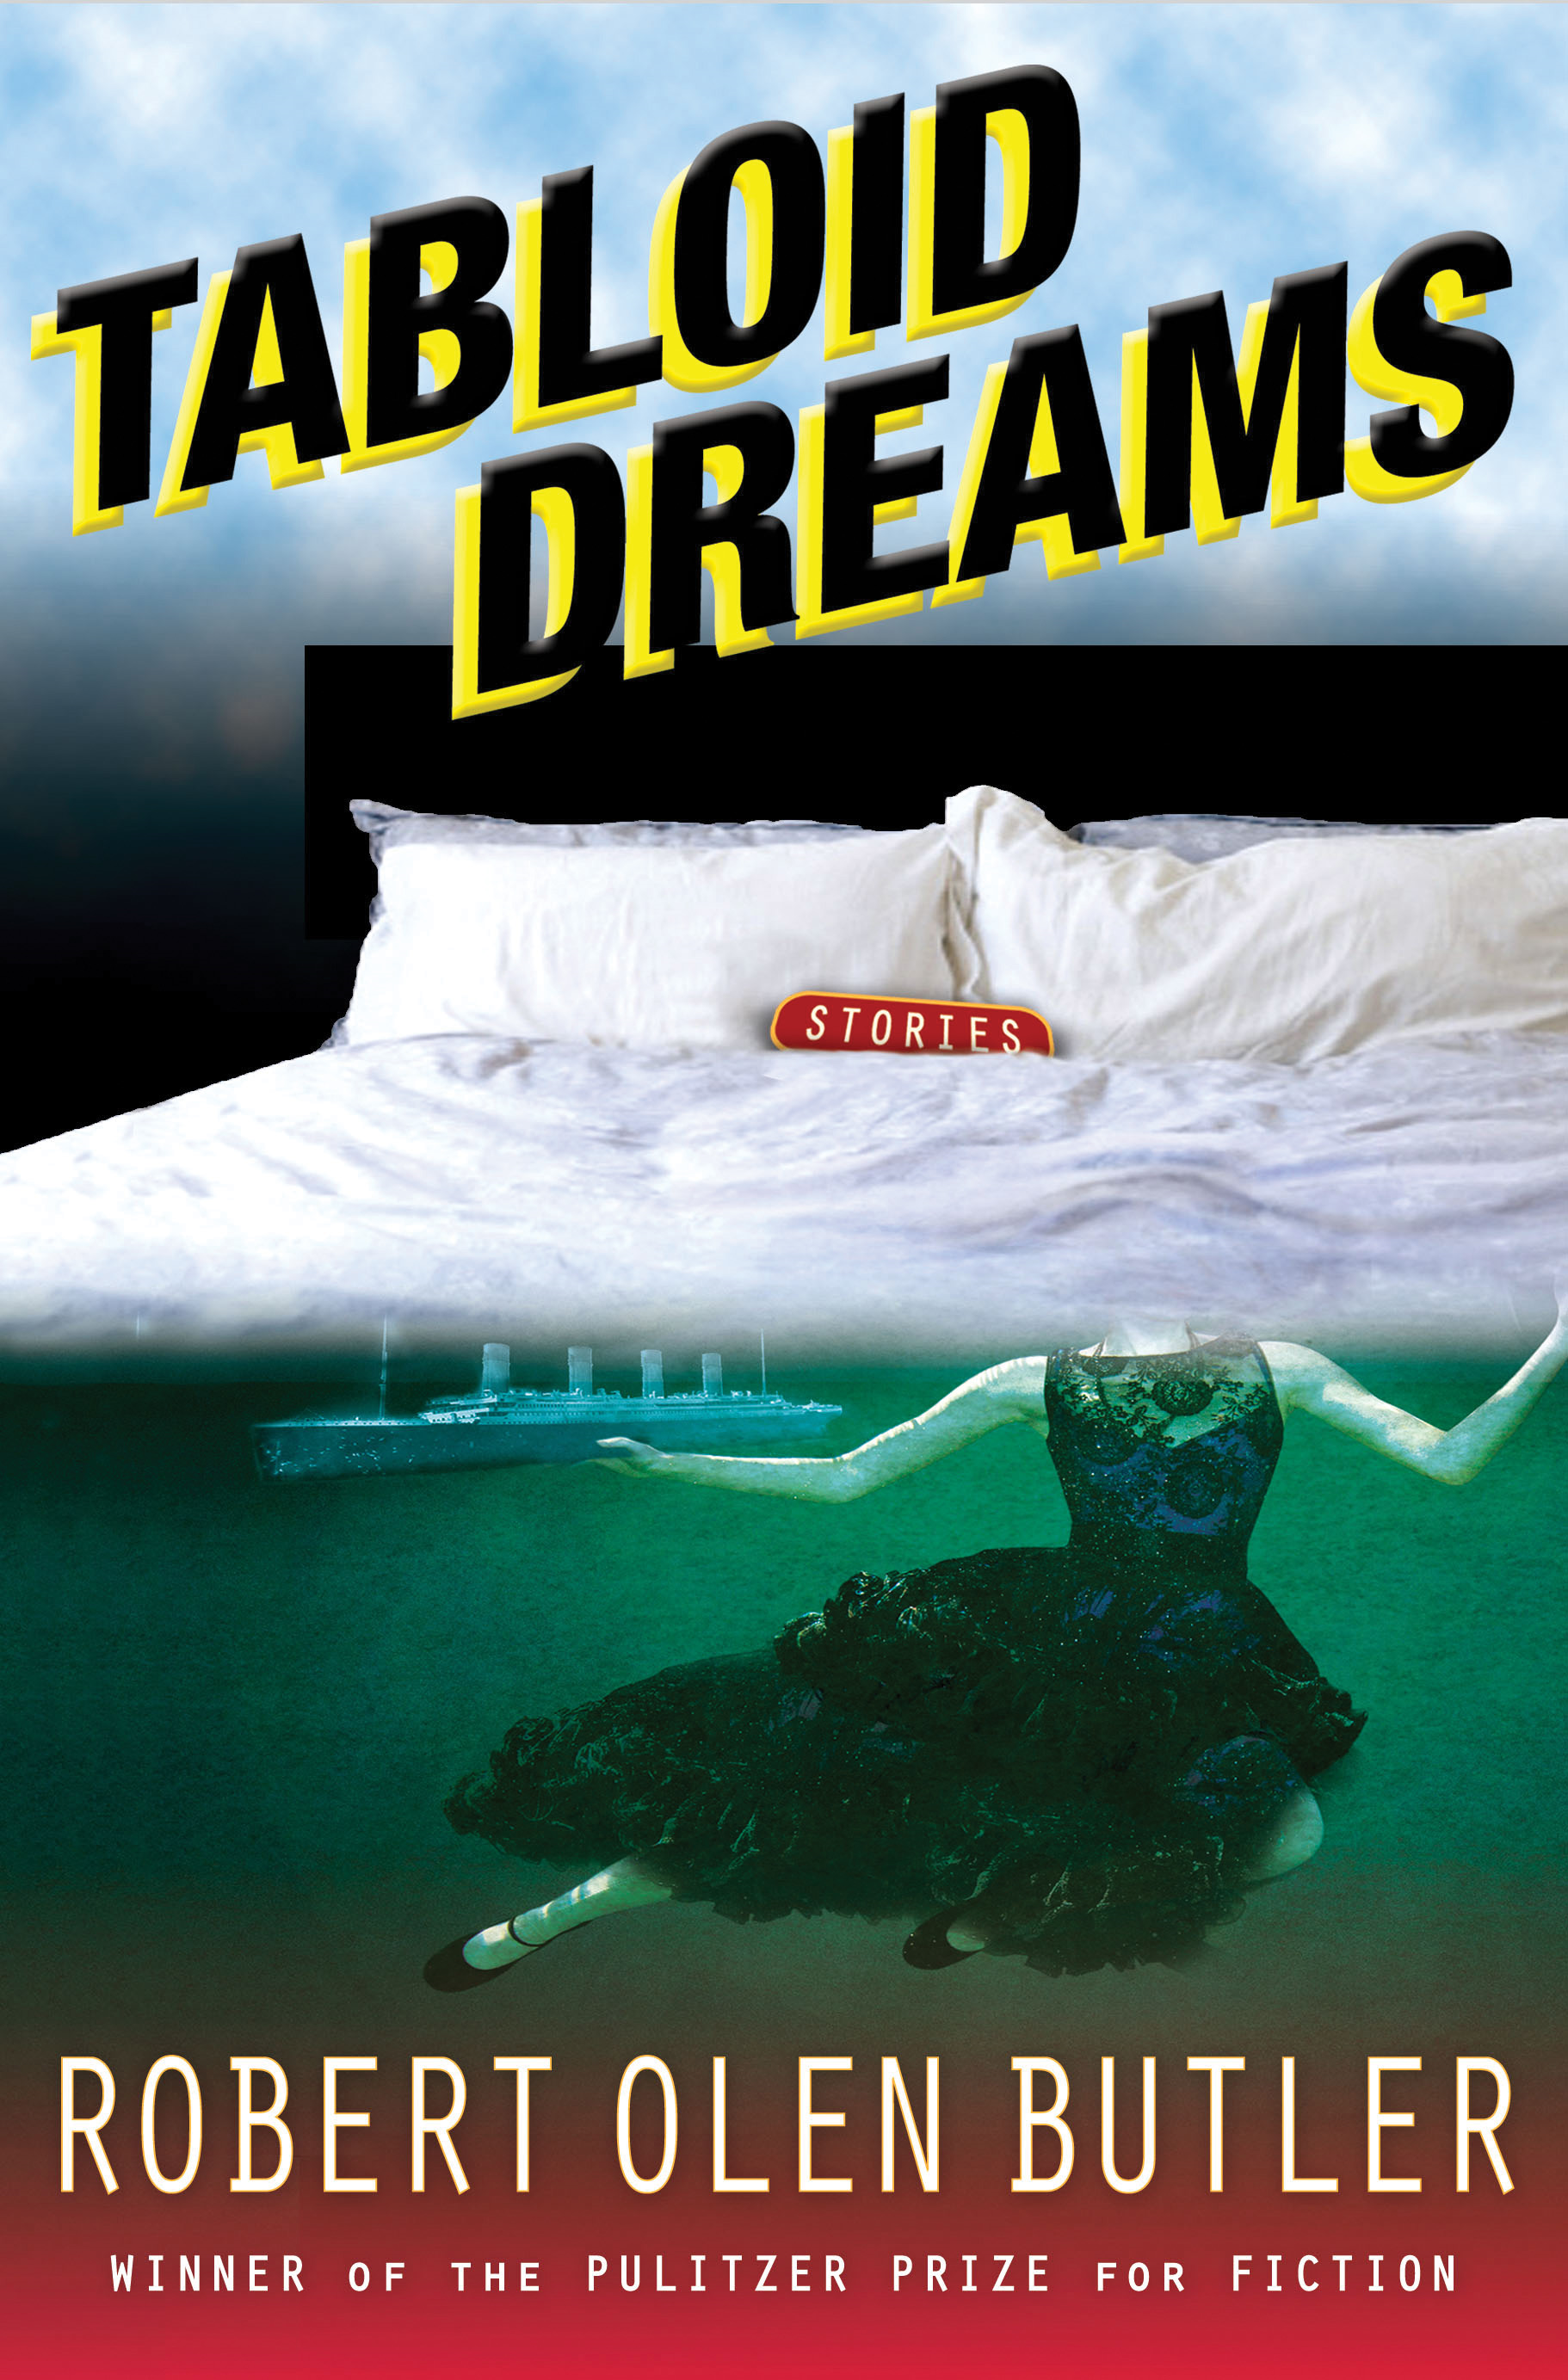 Tabloid Dreams